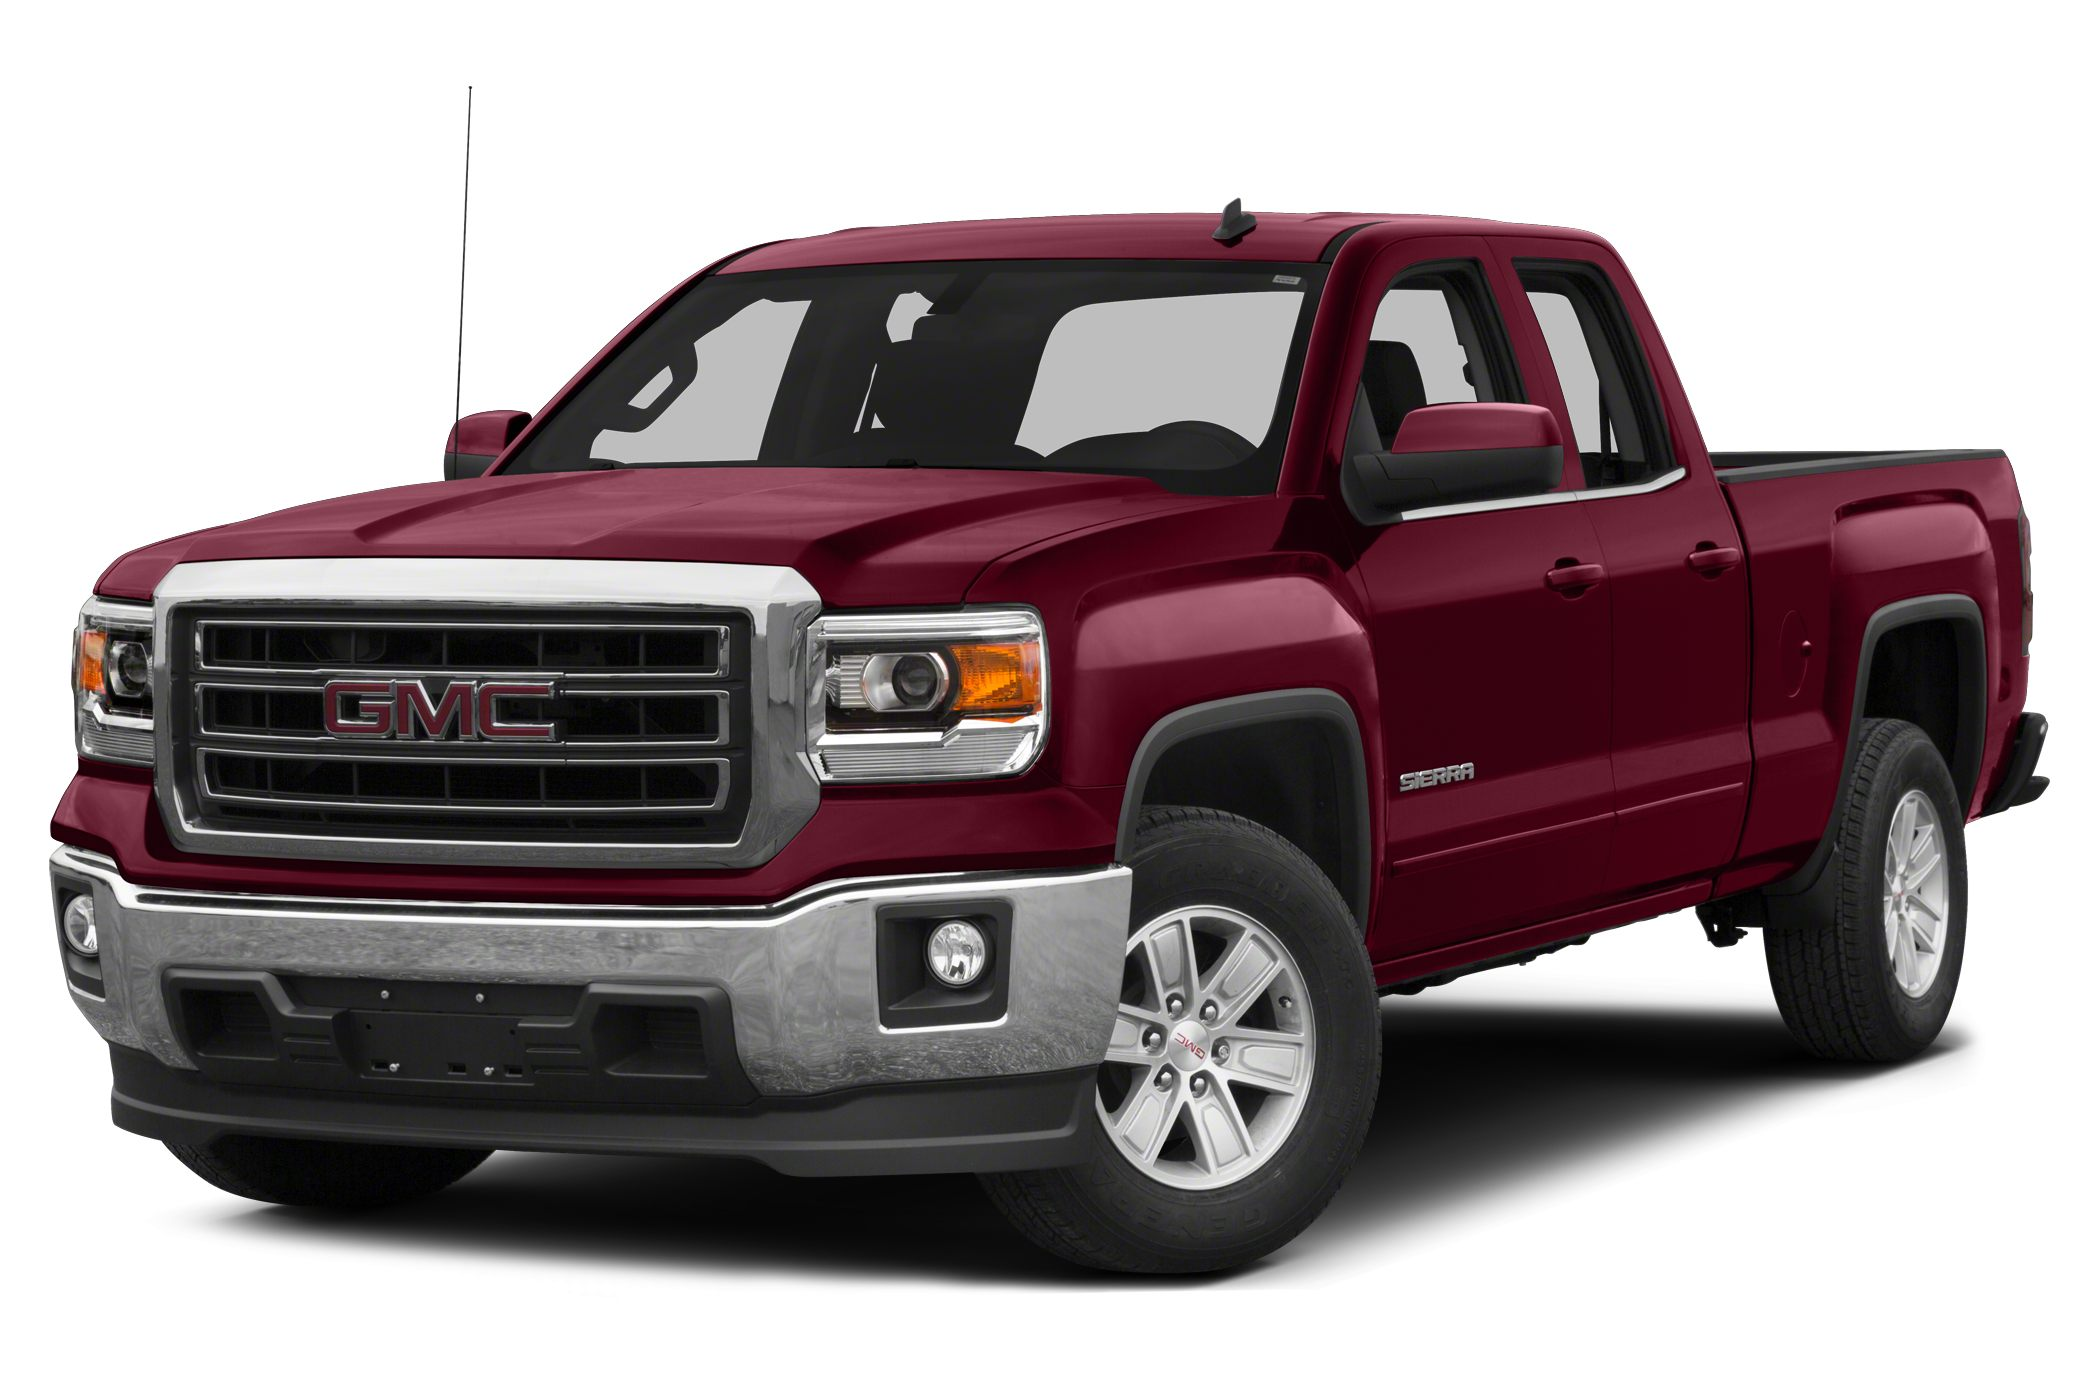 2015 GMC Sierra 1500 SLT Crew Cab Pickup for sale in Columbia for $40,955 with 2 miles